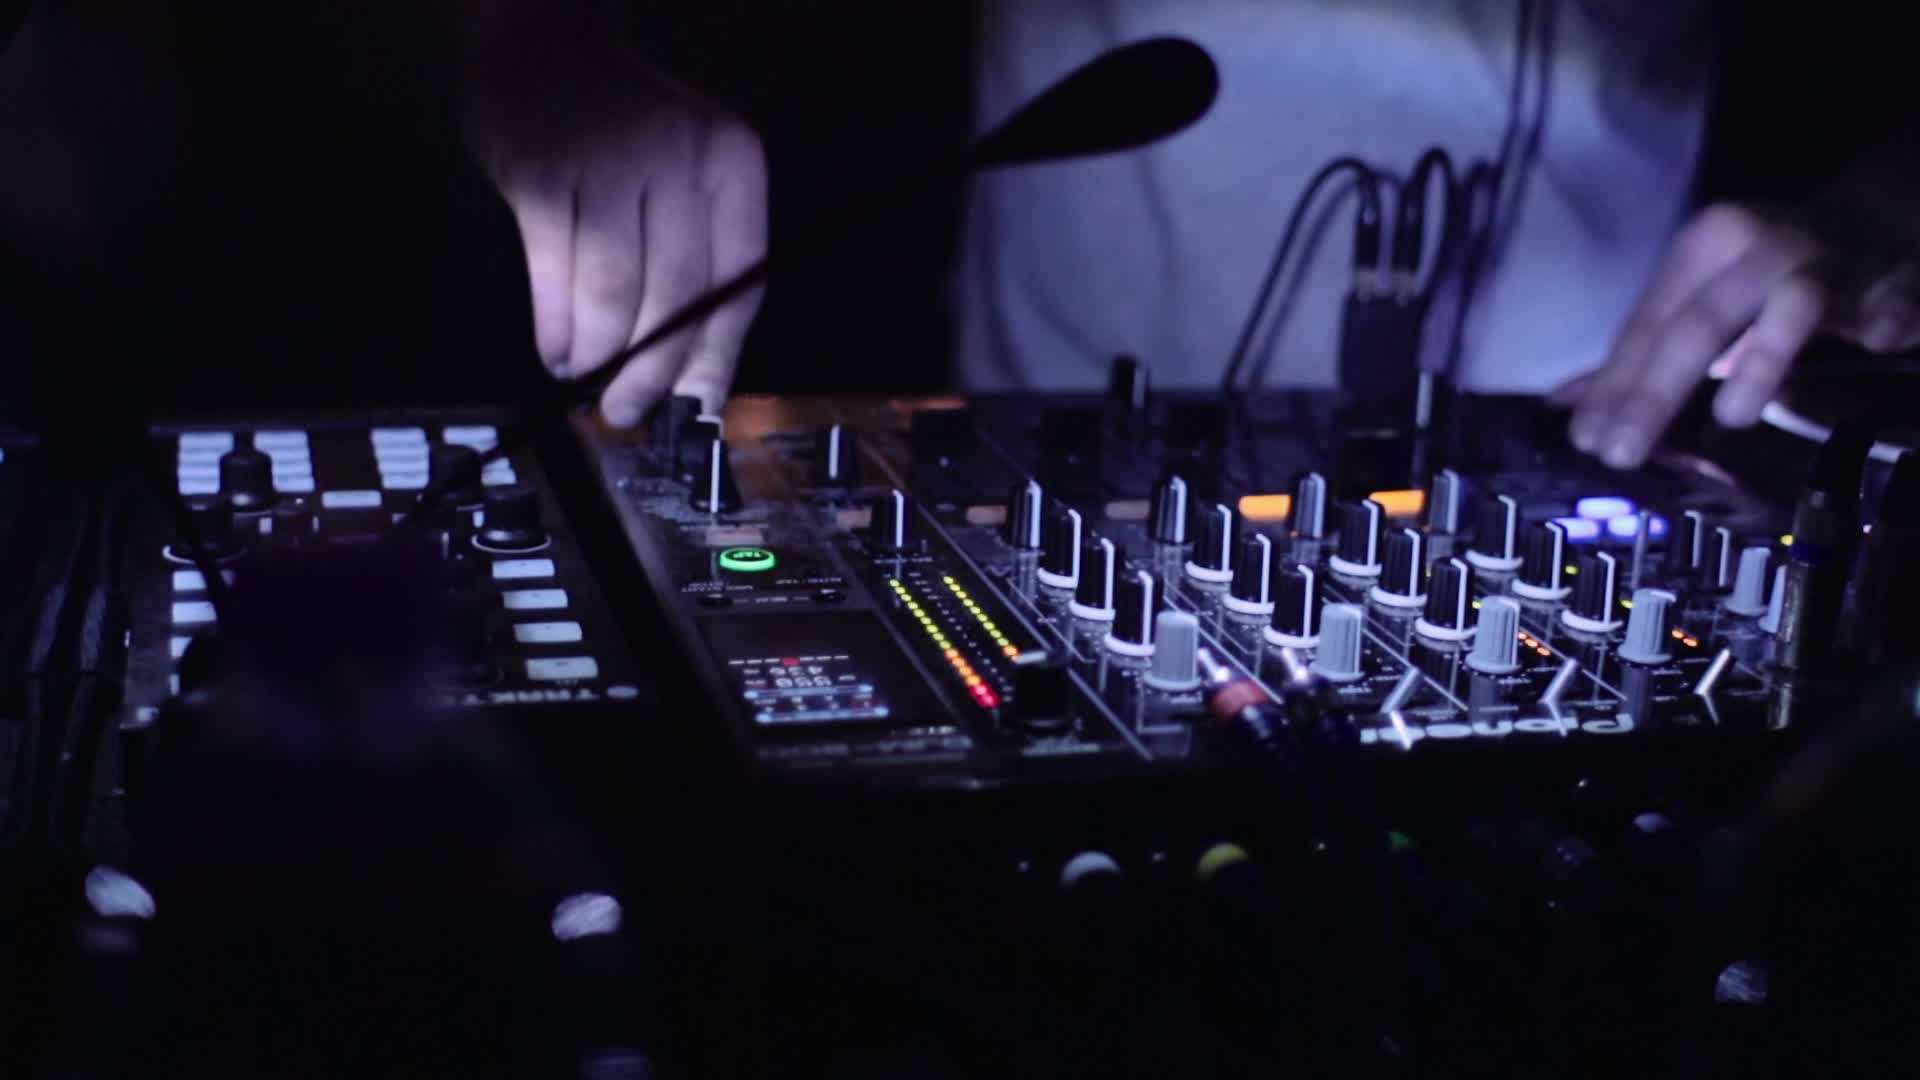 Download Dj Mixer Work 2048 X 2048 Wallpapers: A DJ Plays With The Mixer In Disco